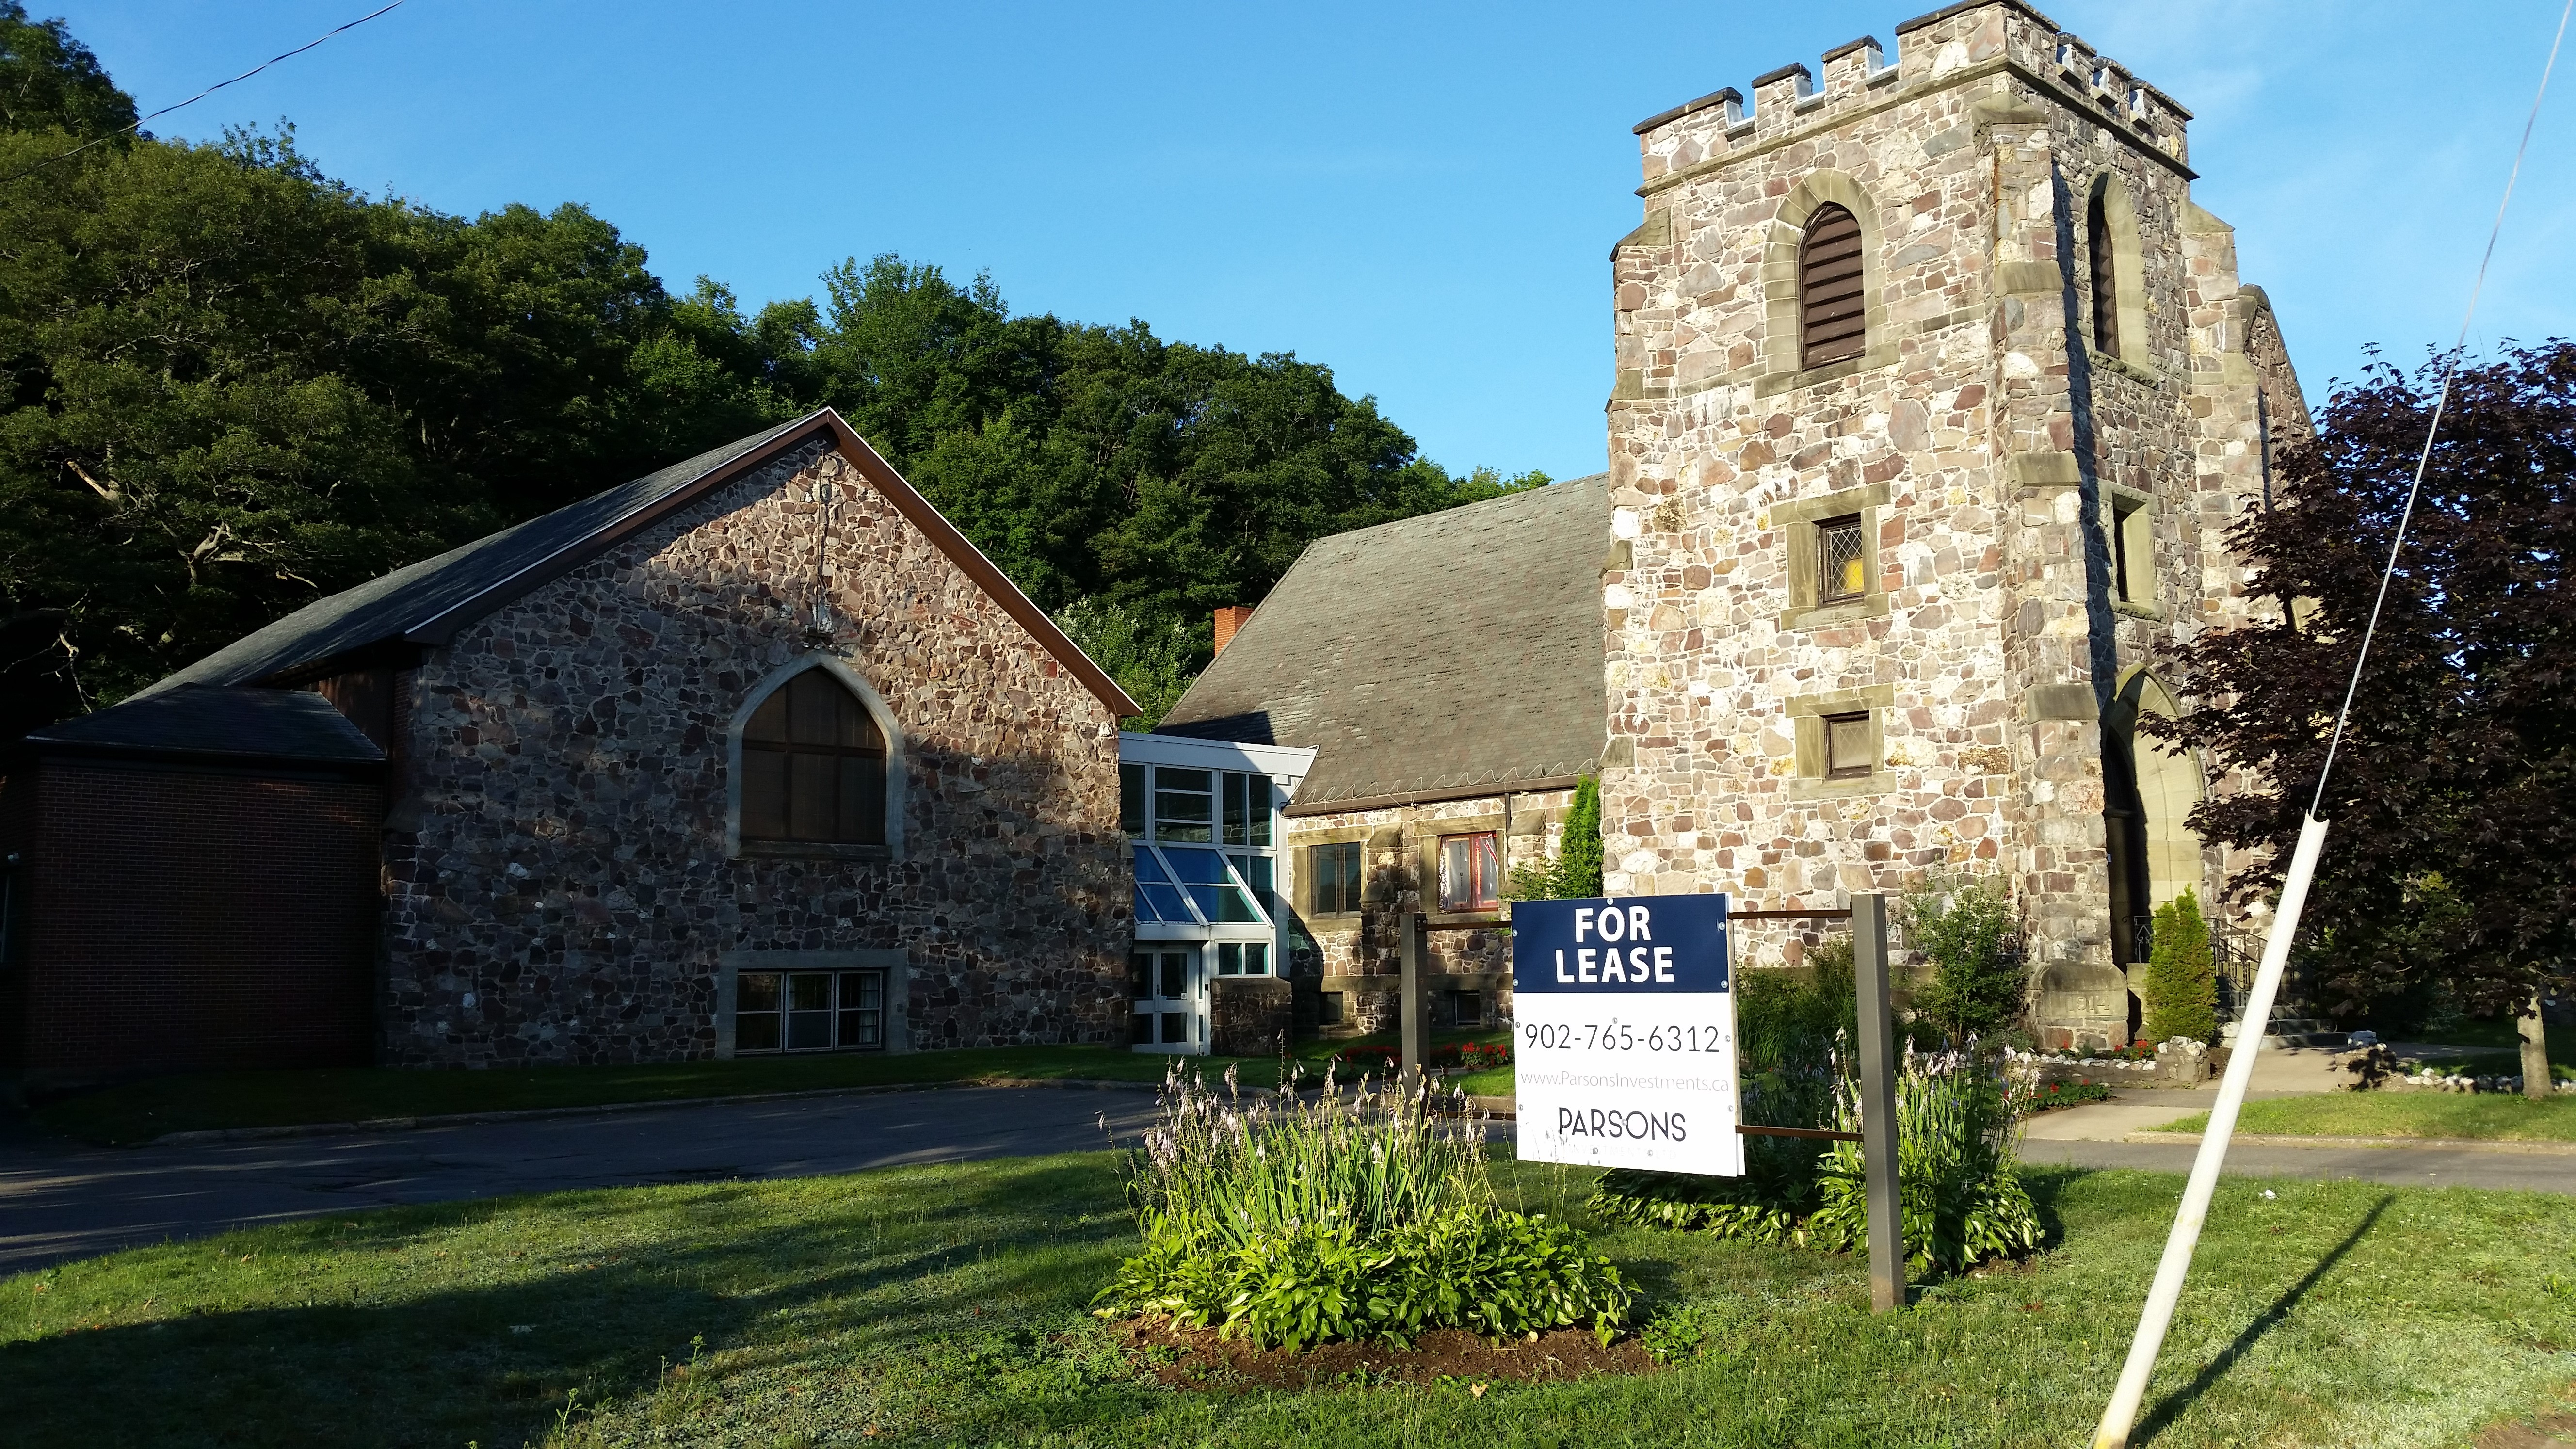 Renewed & Rewritten: The Story of the Kentville Library (Kentville, NS)